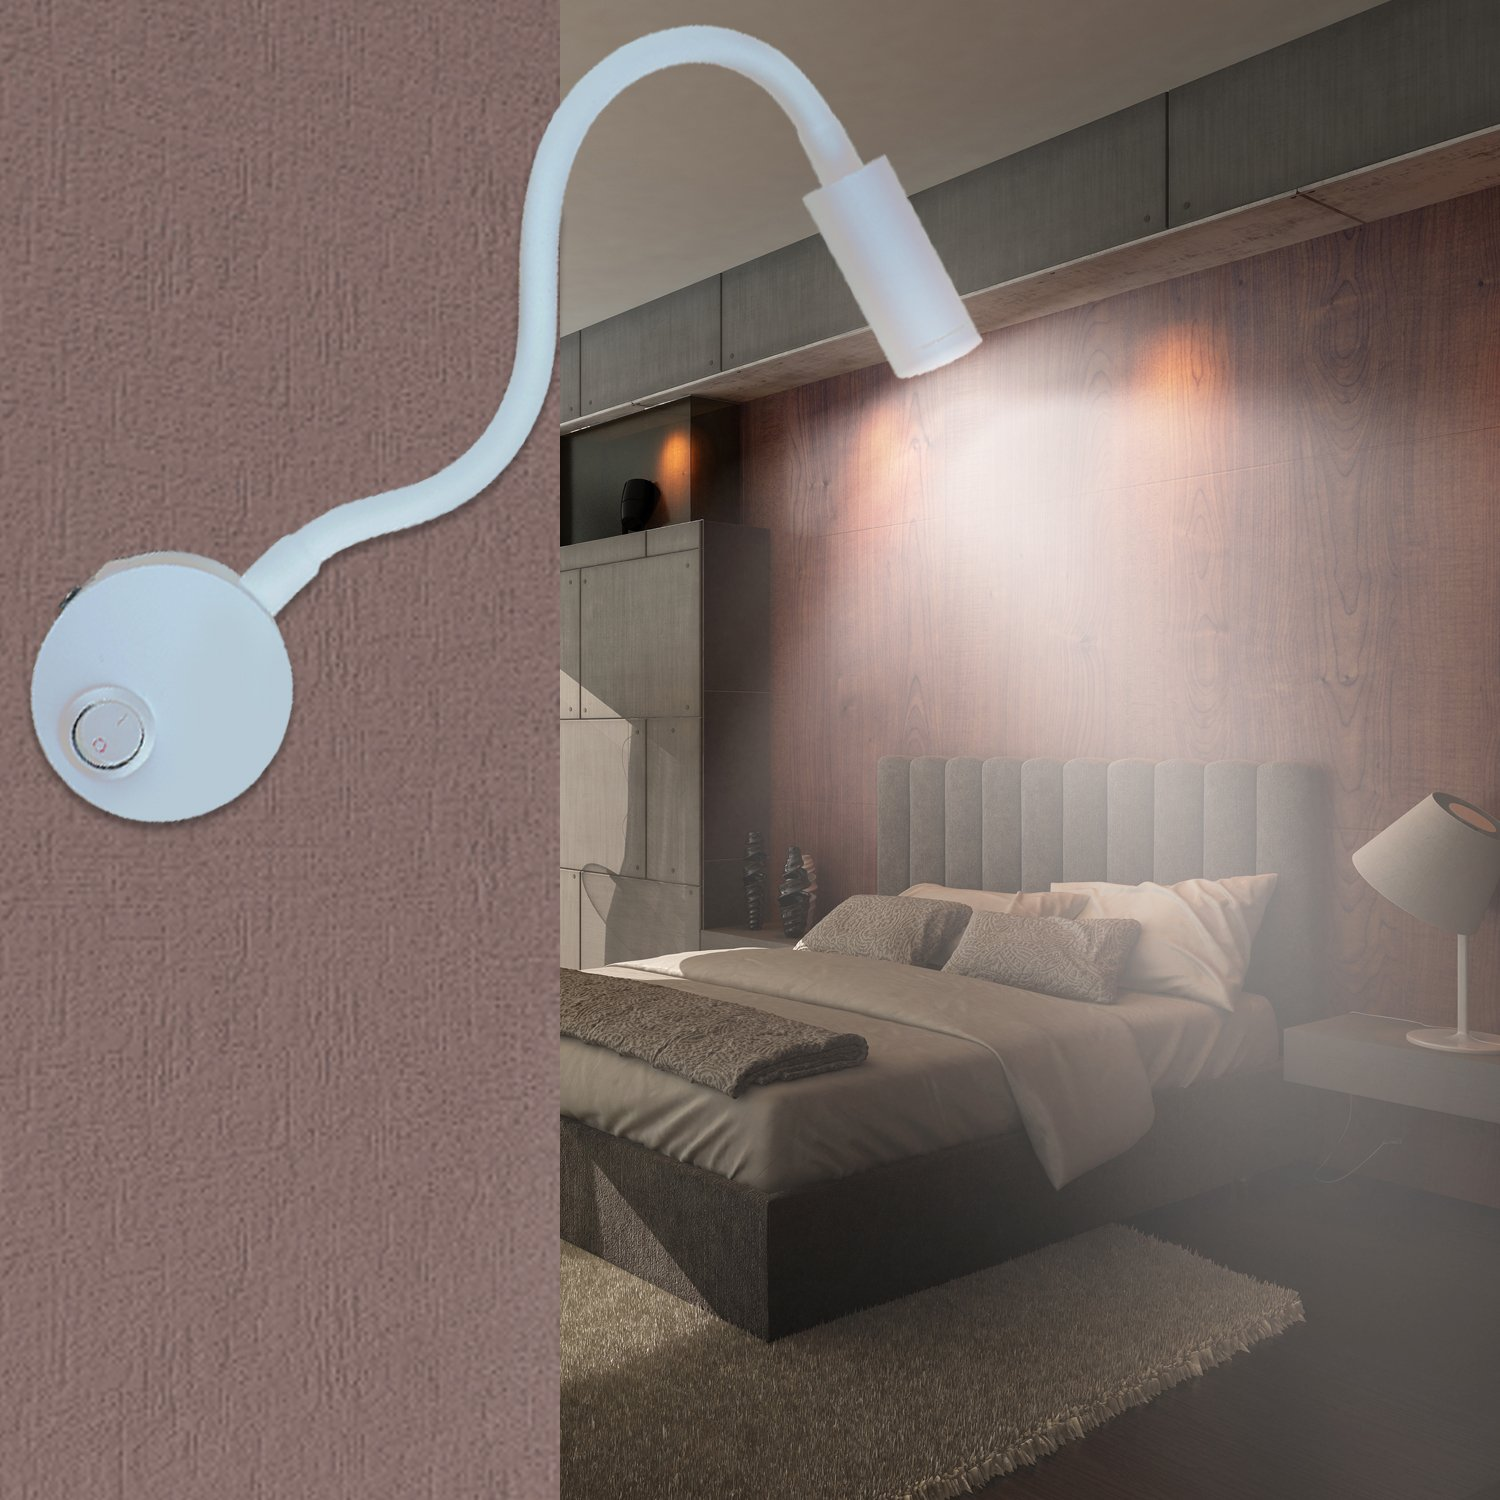 Lanfu LED Wall Lamp, Flexible Wall Mounted Sconce Lighting, Wall Bracket Night Reading Light with Switch and Plug in Cord for Bedroom Living Room or Kid Room, White